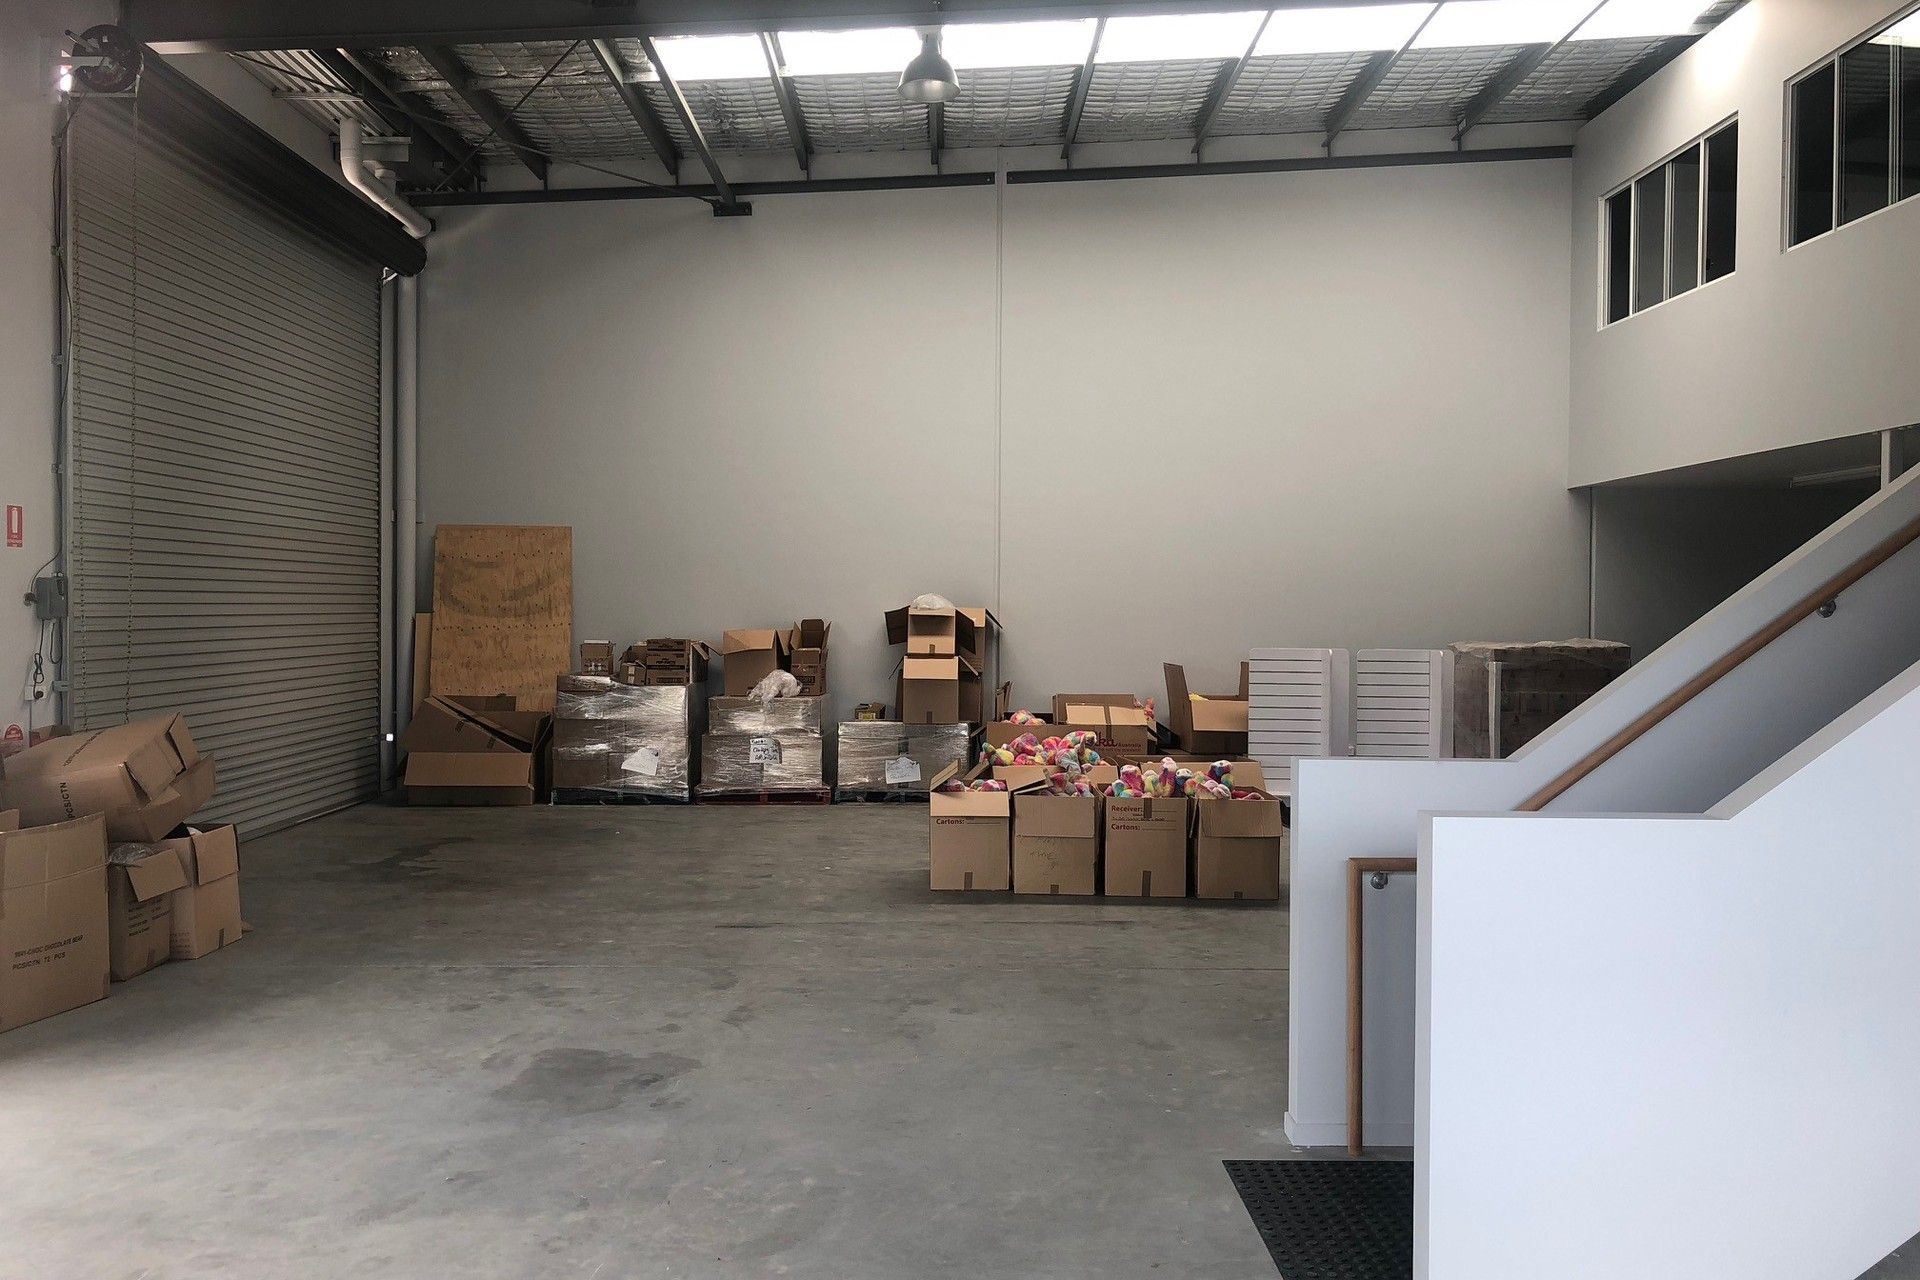 SHOWROOM / WAREHOUSE WITH ALL THE BELLS AND WHISTLES